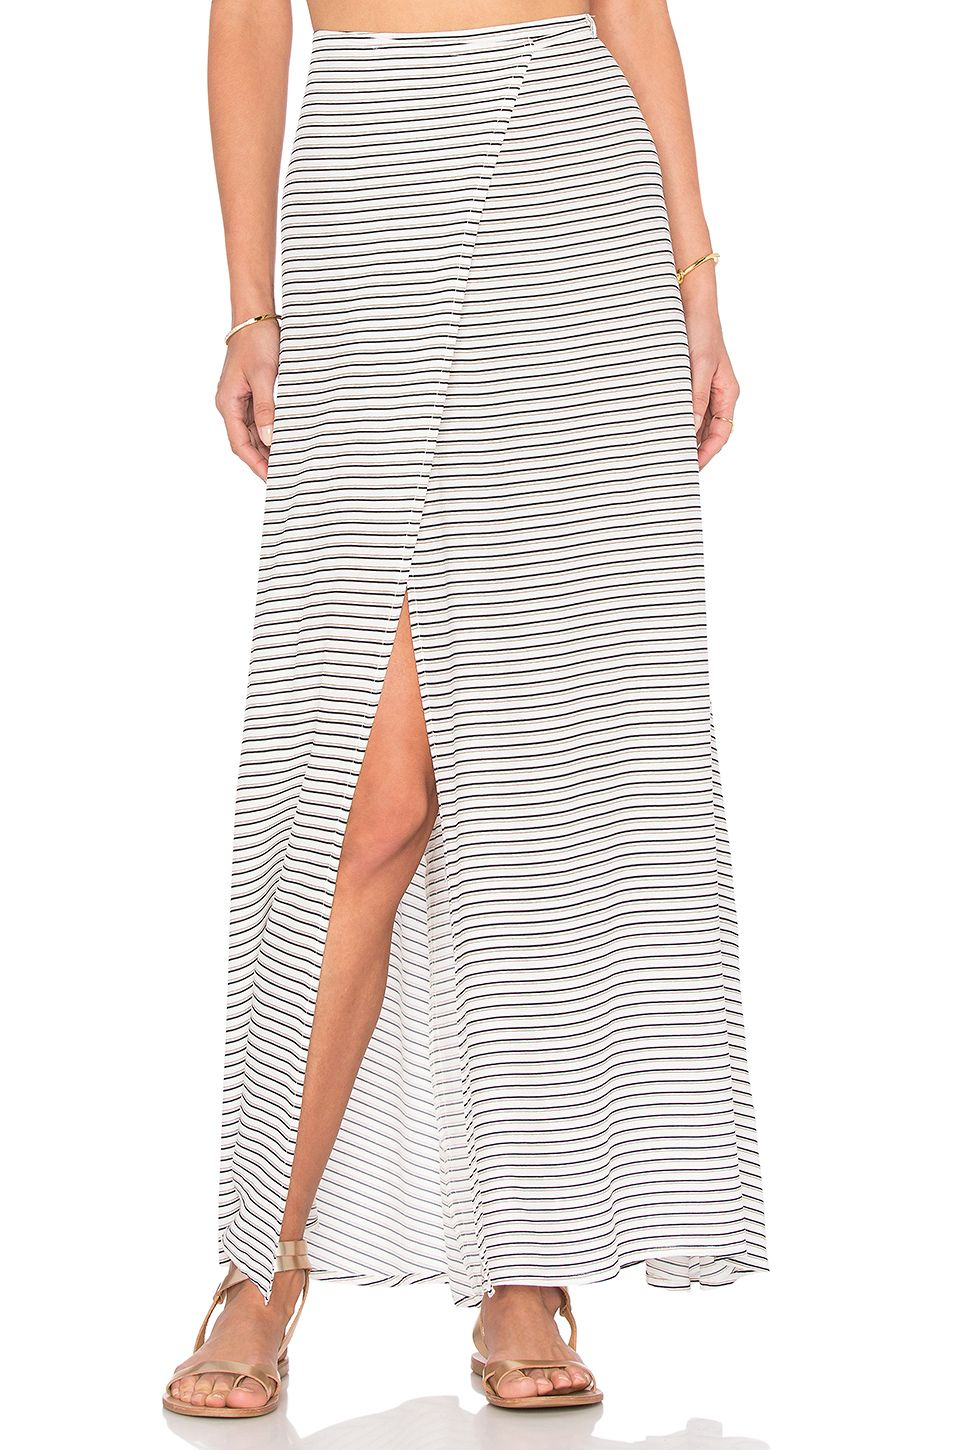 FAITHFULL THE BRAND Freja Maxi Skirt in Sea Salt Print